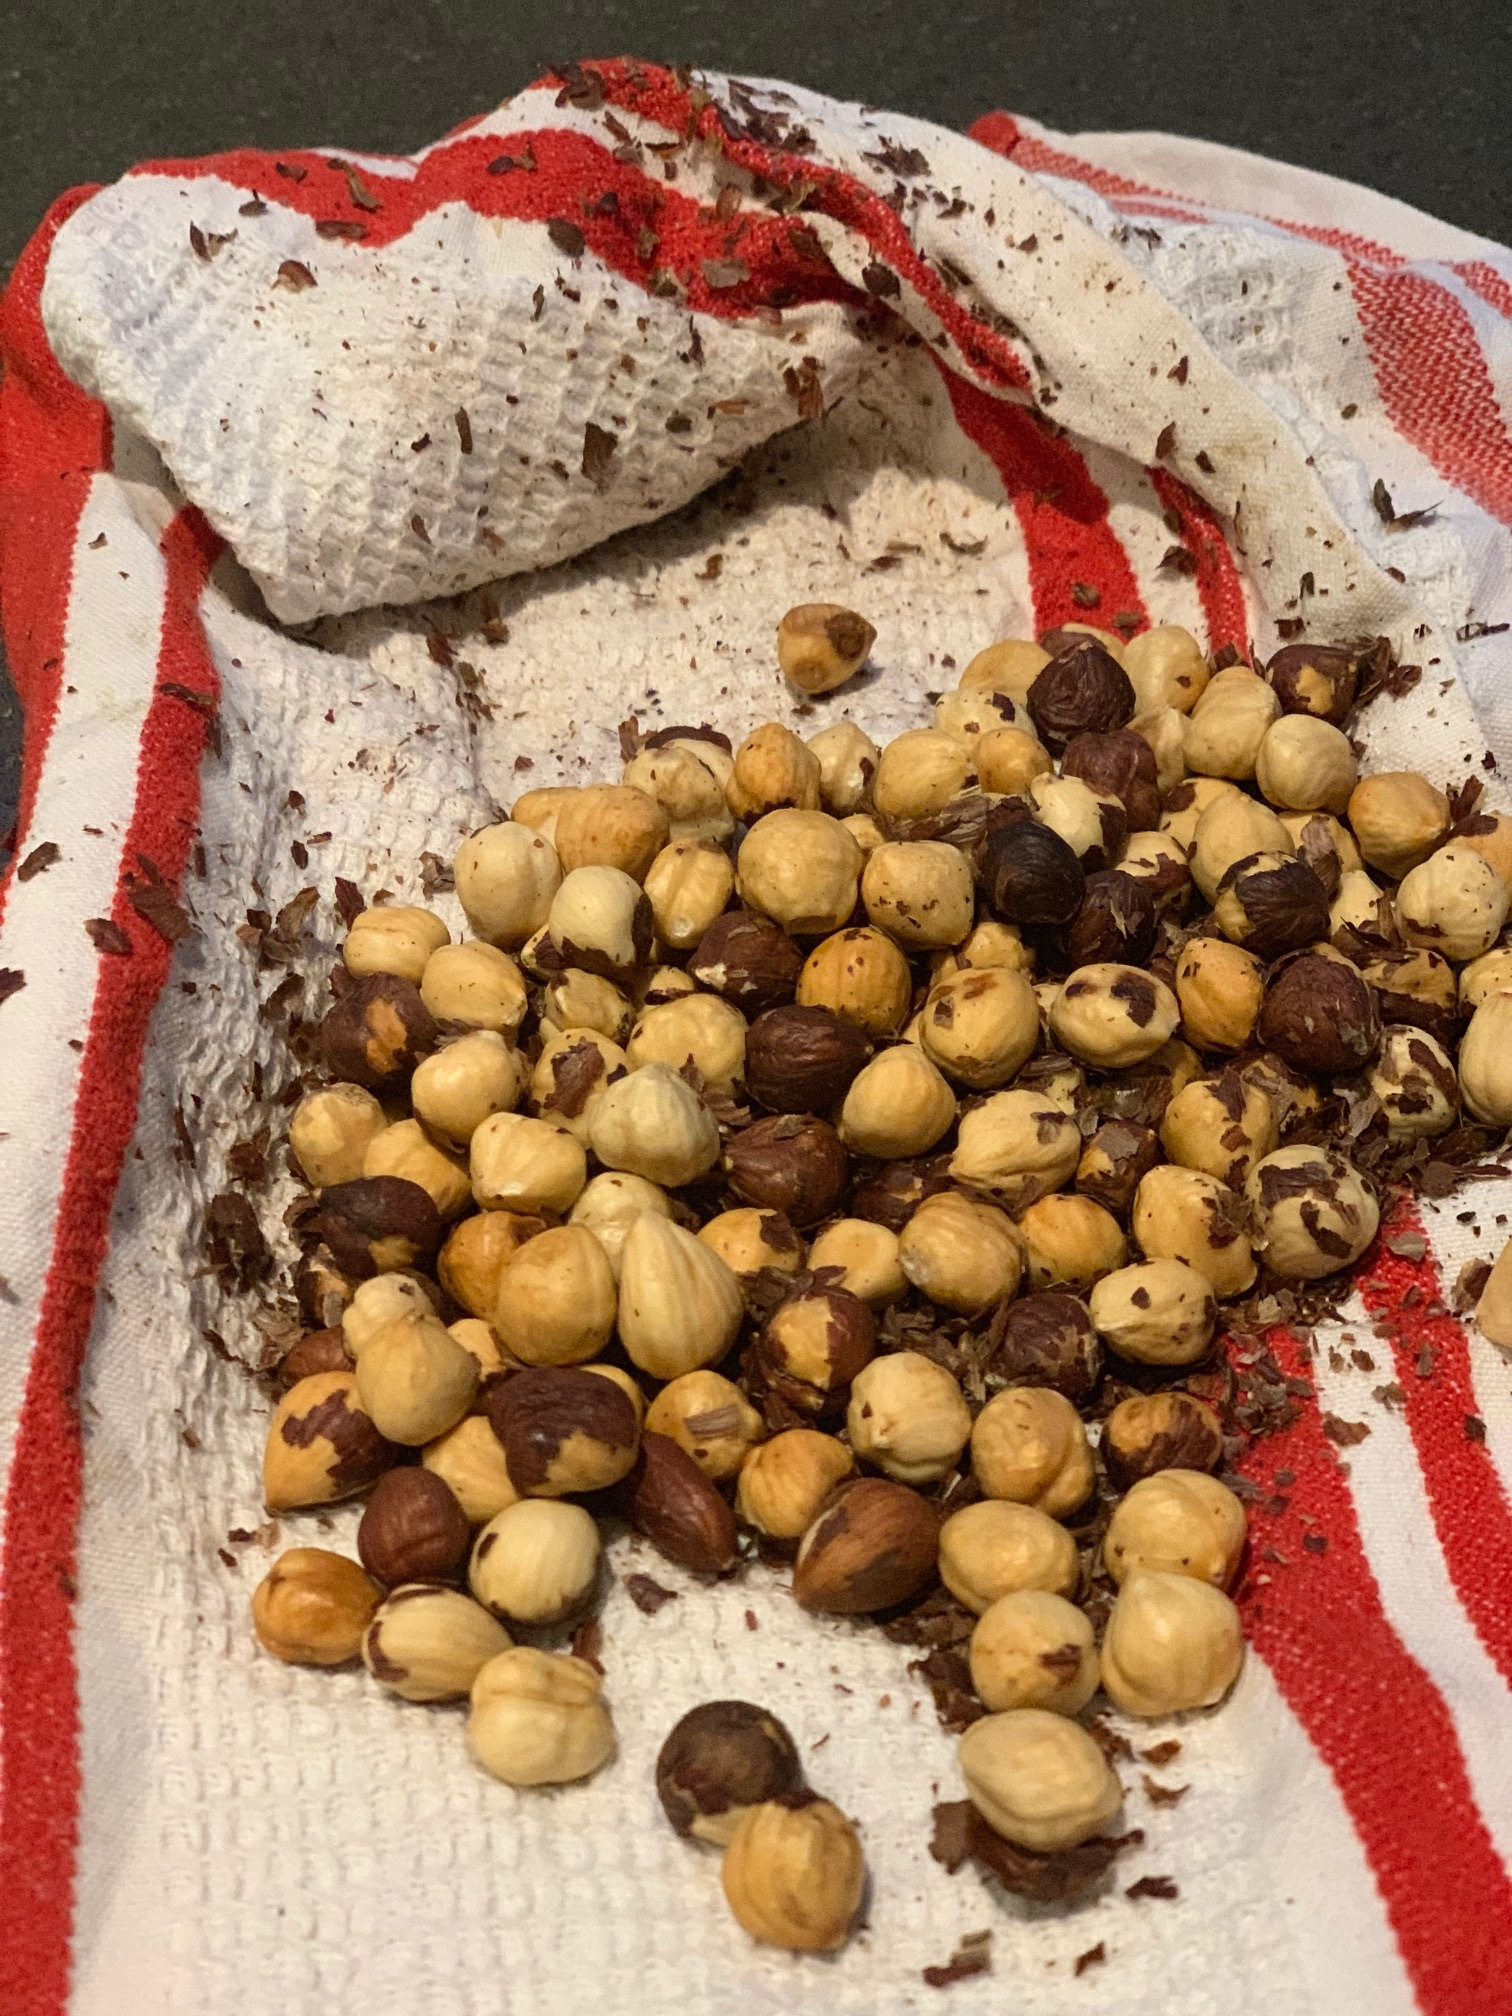 Rubbing the hazelnuts ina towel right after they're baked helps the skin fall off